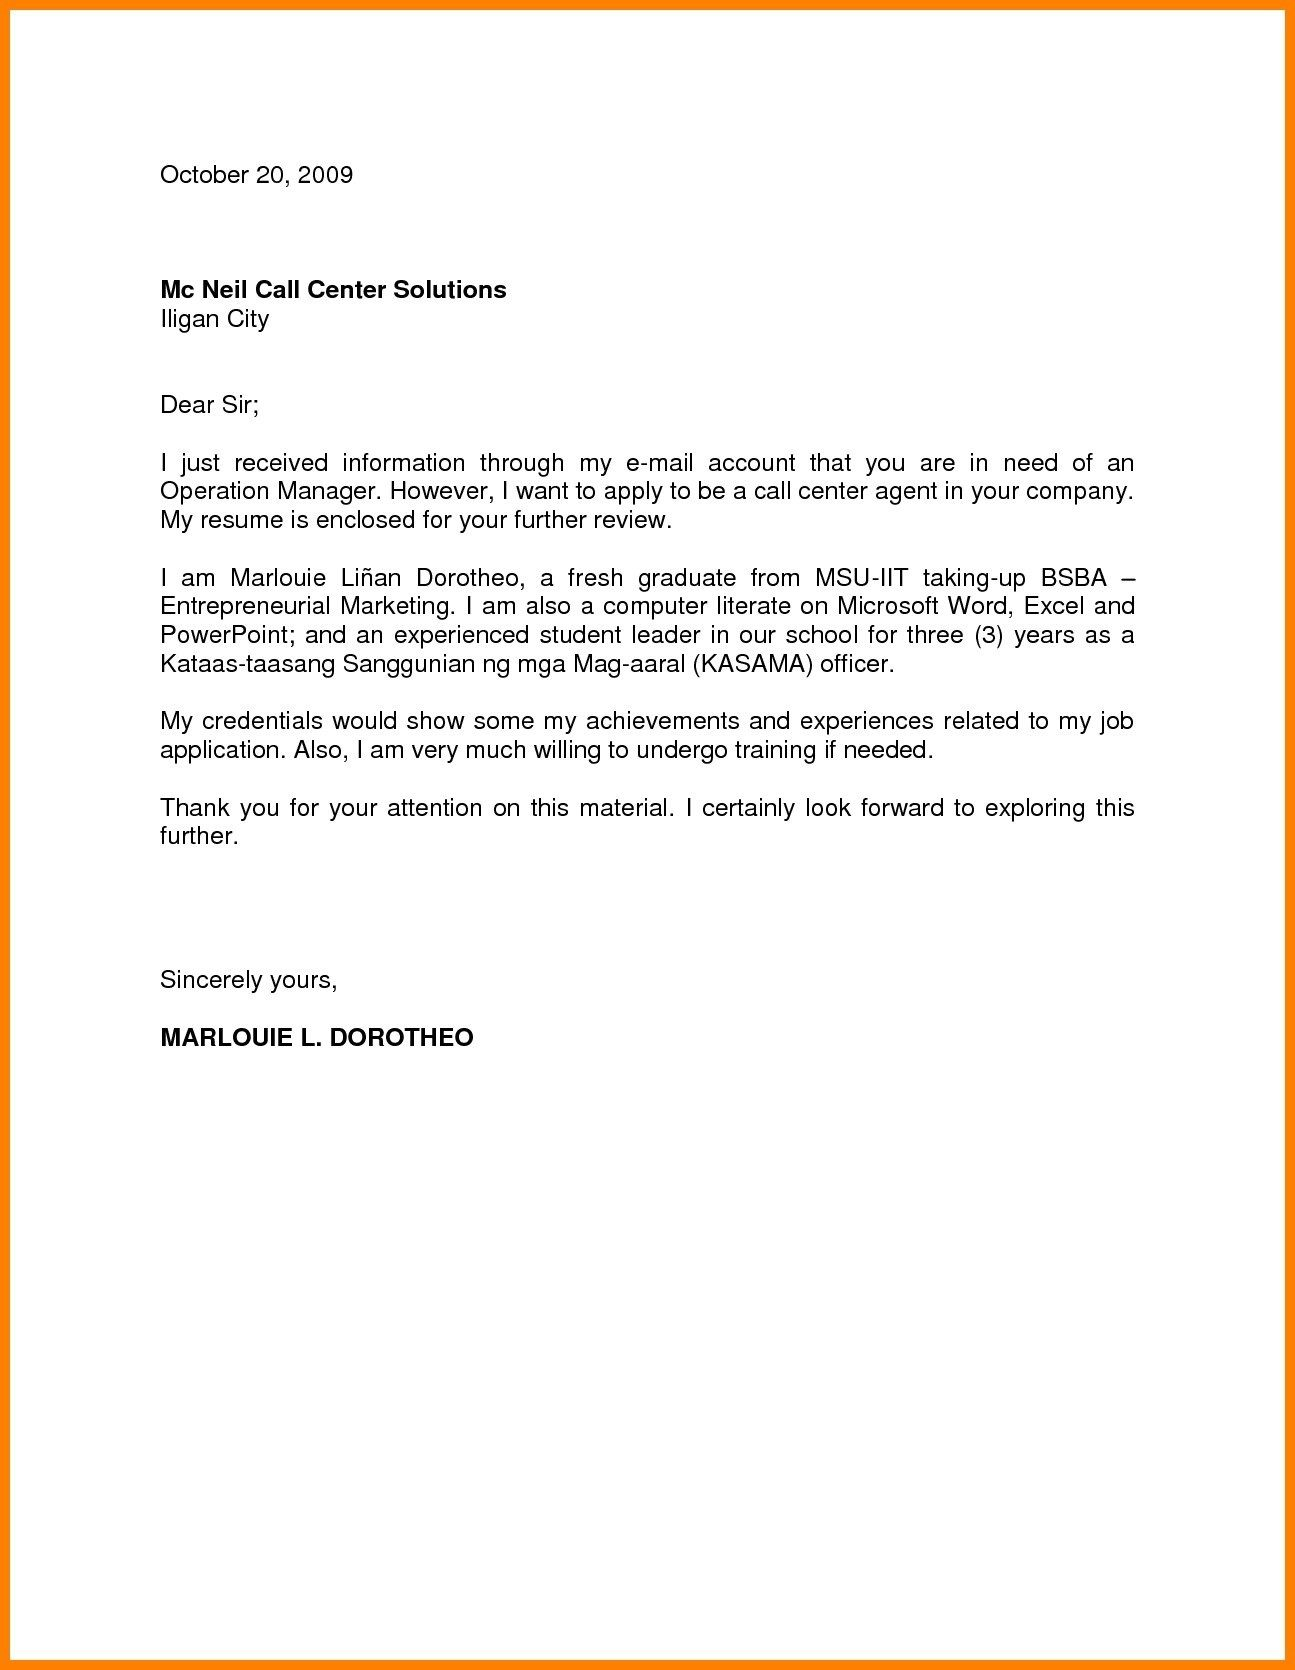 009 Simple Cover Letter Sample Template For Fresh Graduate In Marketing Photo Full